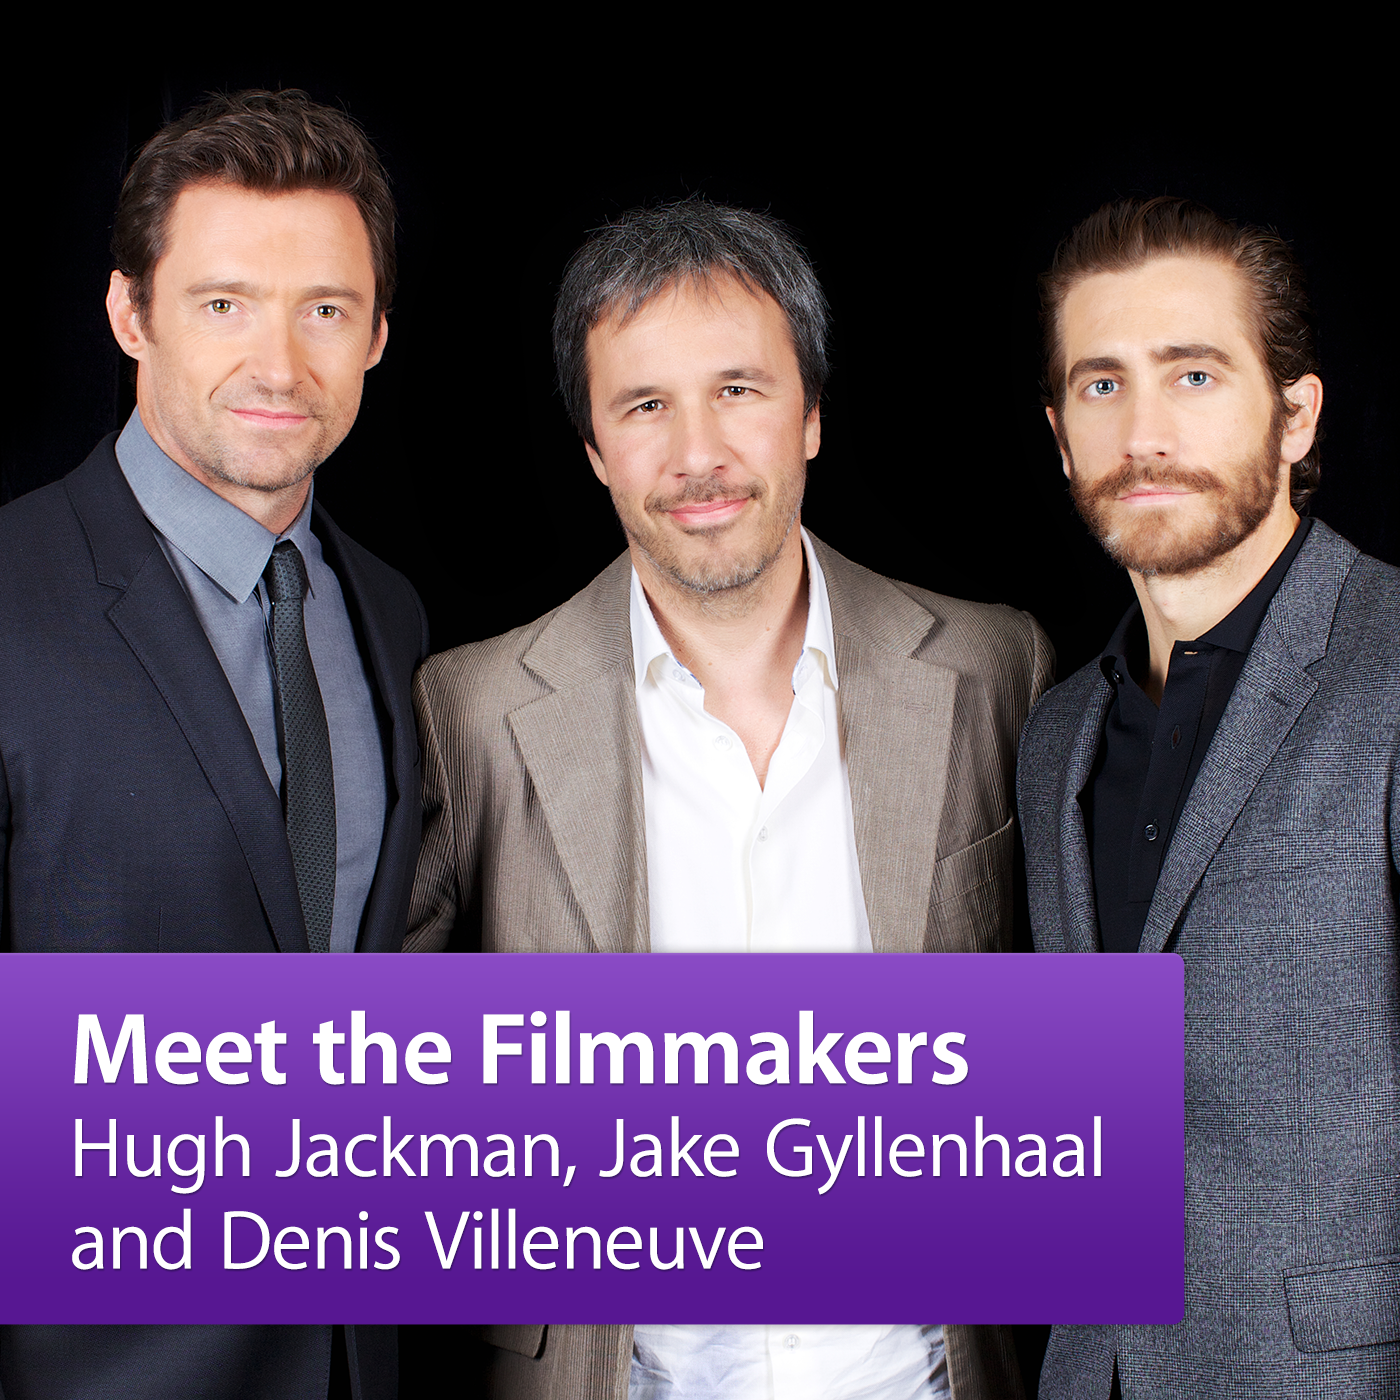 Hugh Jackman, Jake Gyllenhaal and Denis Villeneuve: Meet the Filmmakers